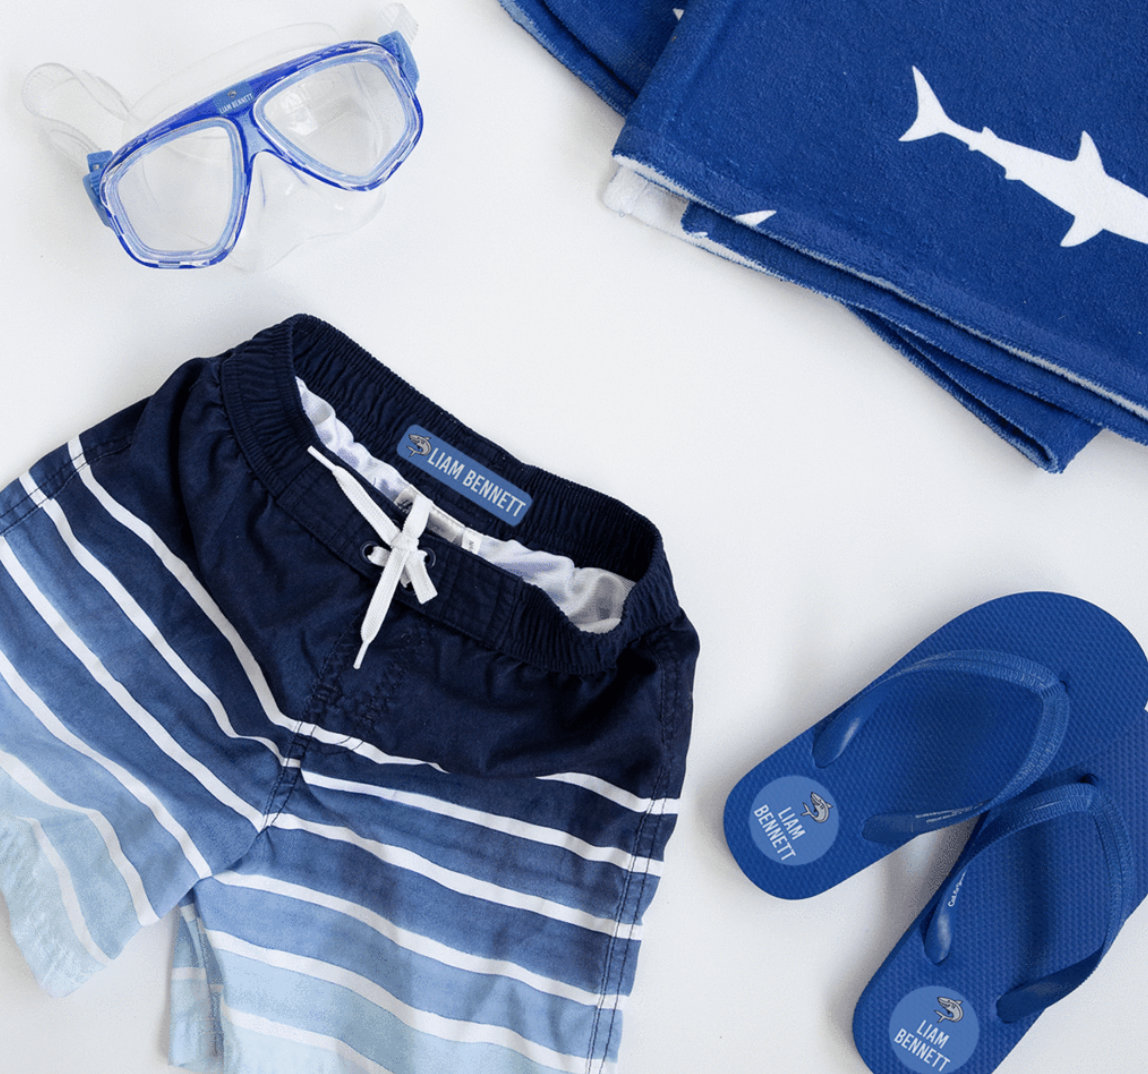 Blue Swim Shorts and blue flip flops featuring water proof name labels by Label Daddy